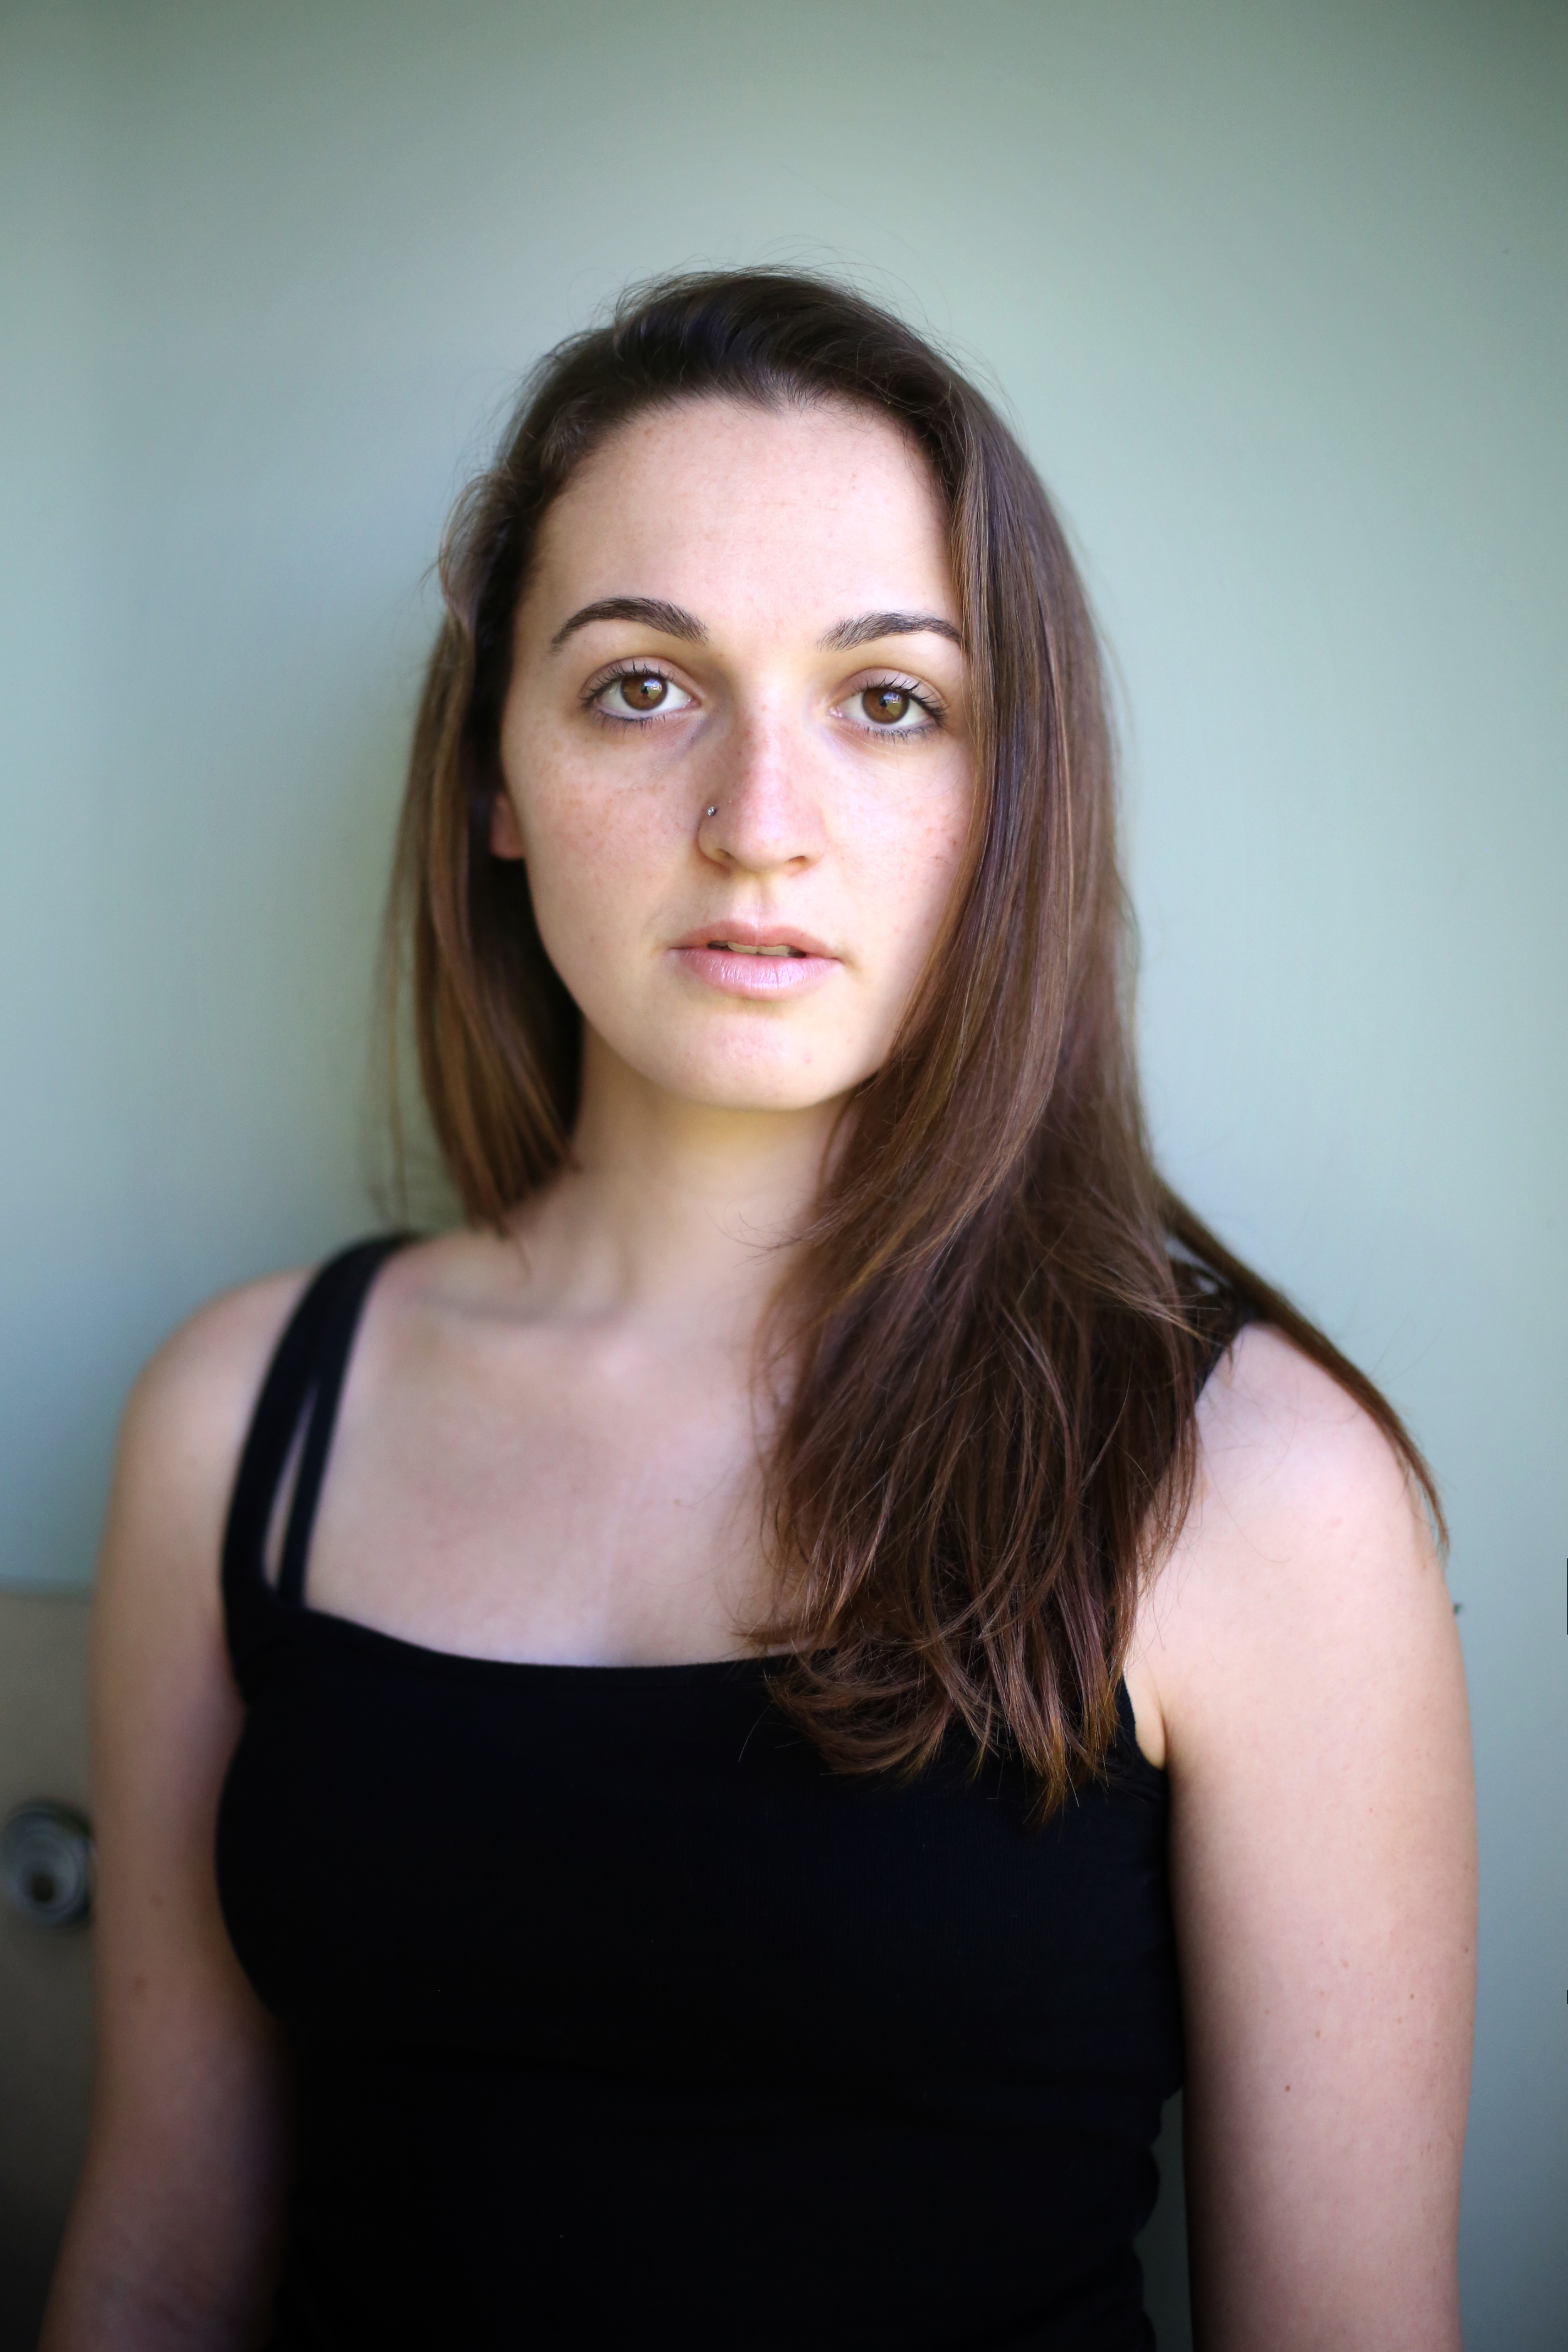 """Julia Sevy is a passionate dancer and creative writer who graduated from Brown University in 2014. Read her piece, """" Constellations """" in the Spring 2015 Intima."""